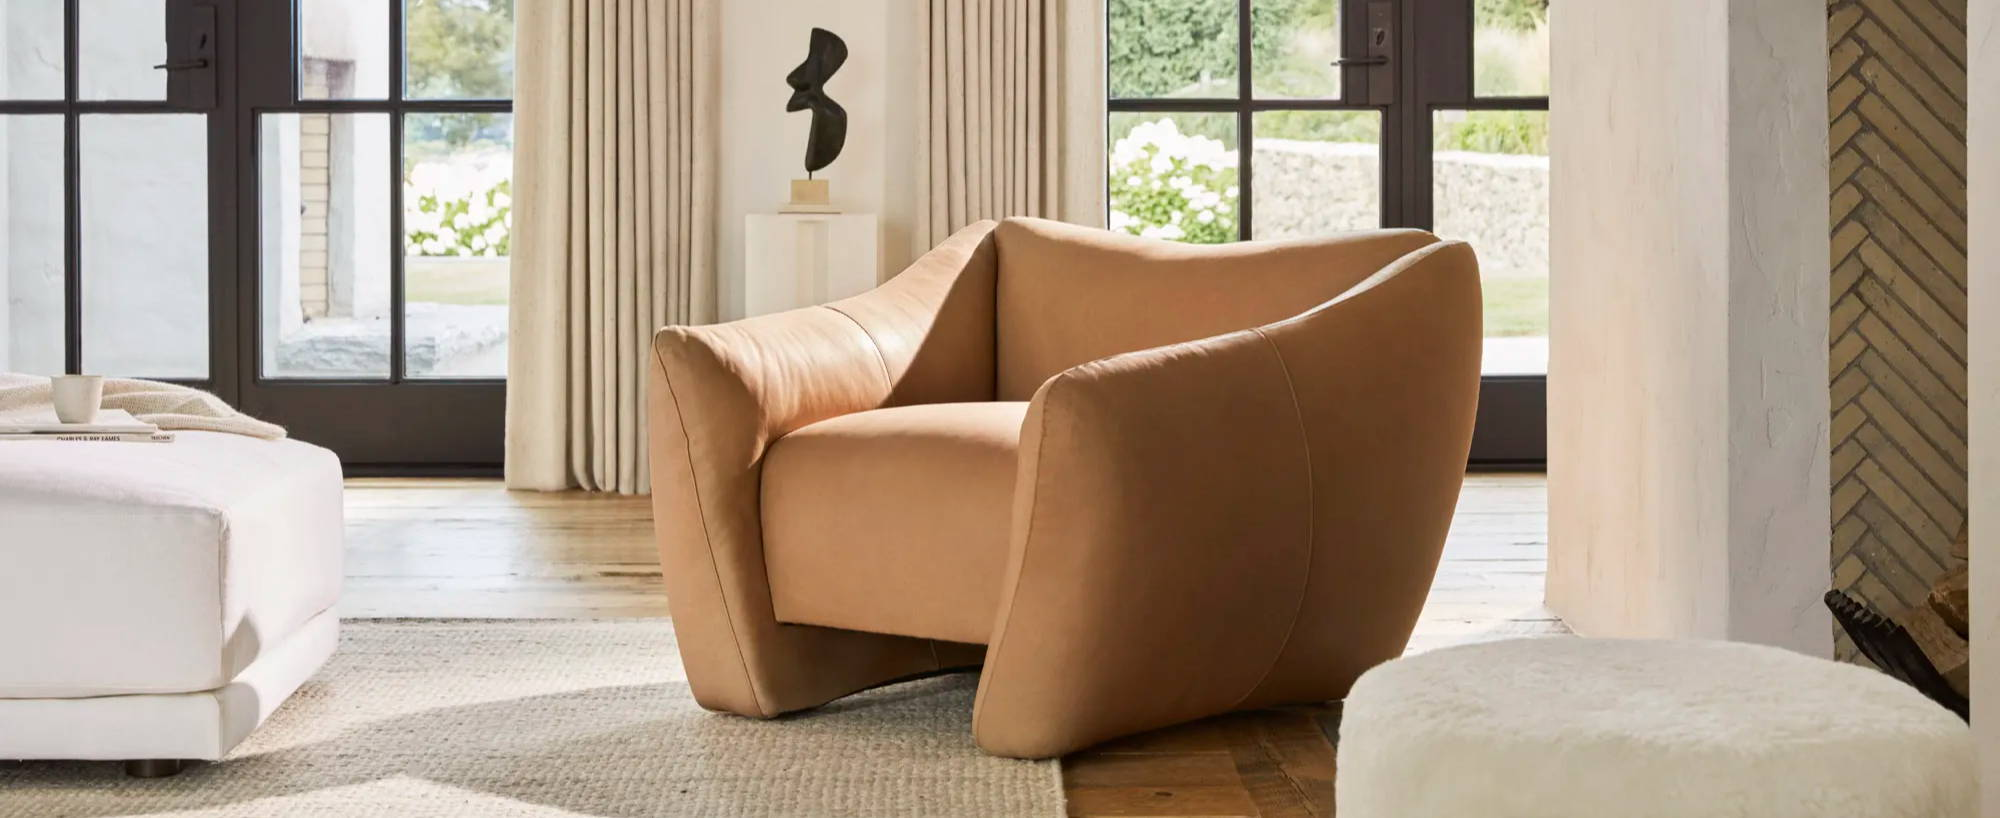 The Bond chair in Camel Tuscan Leather